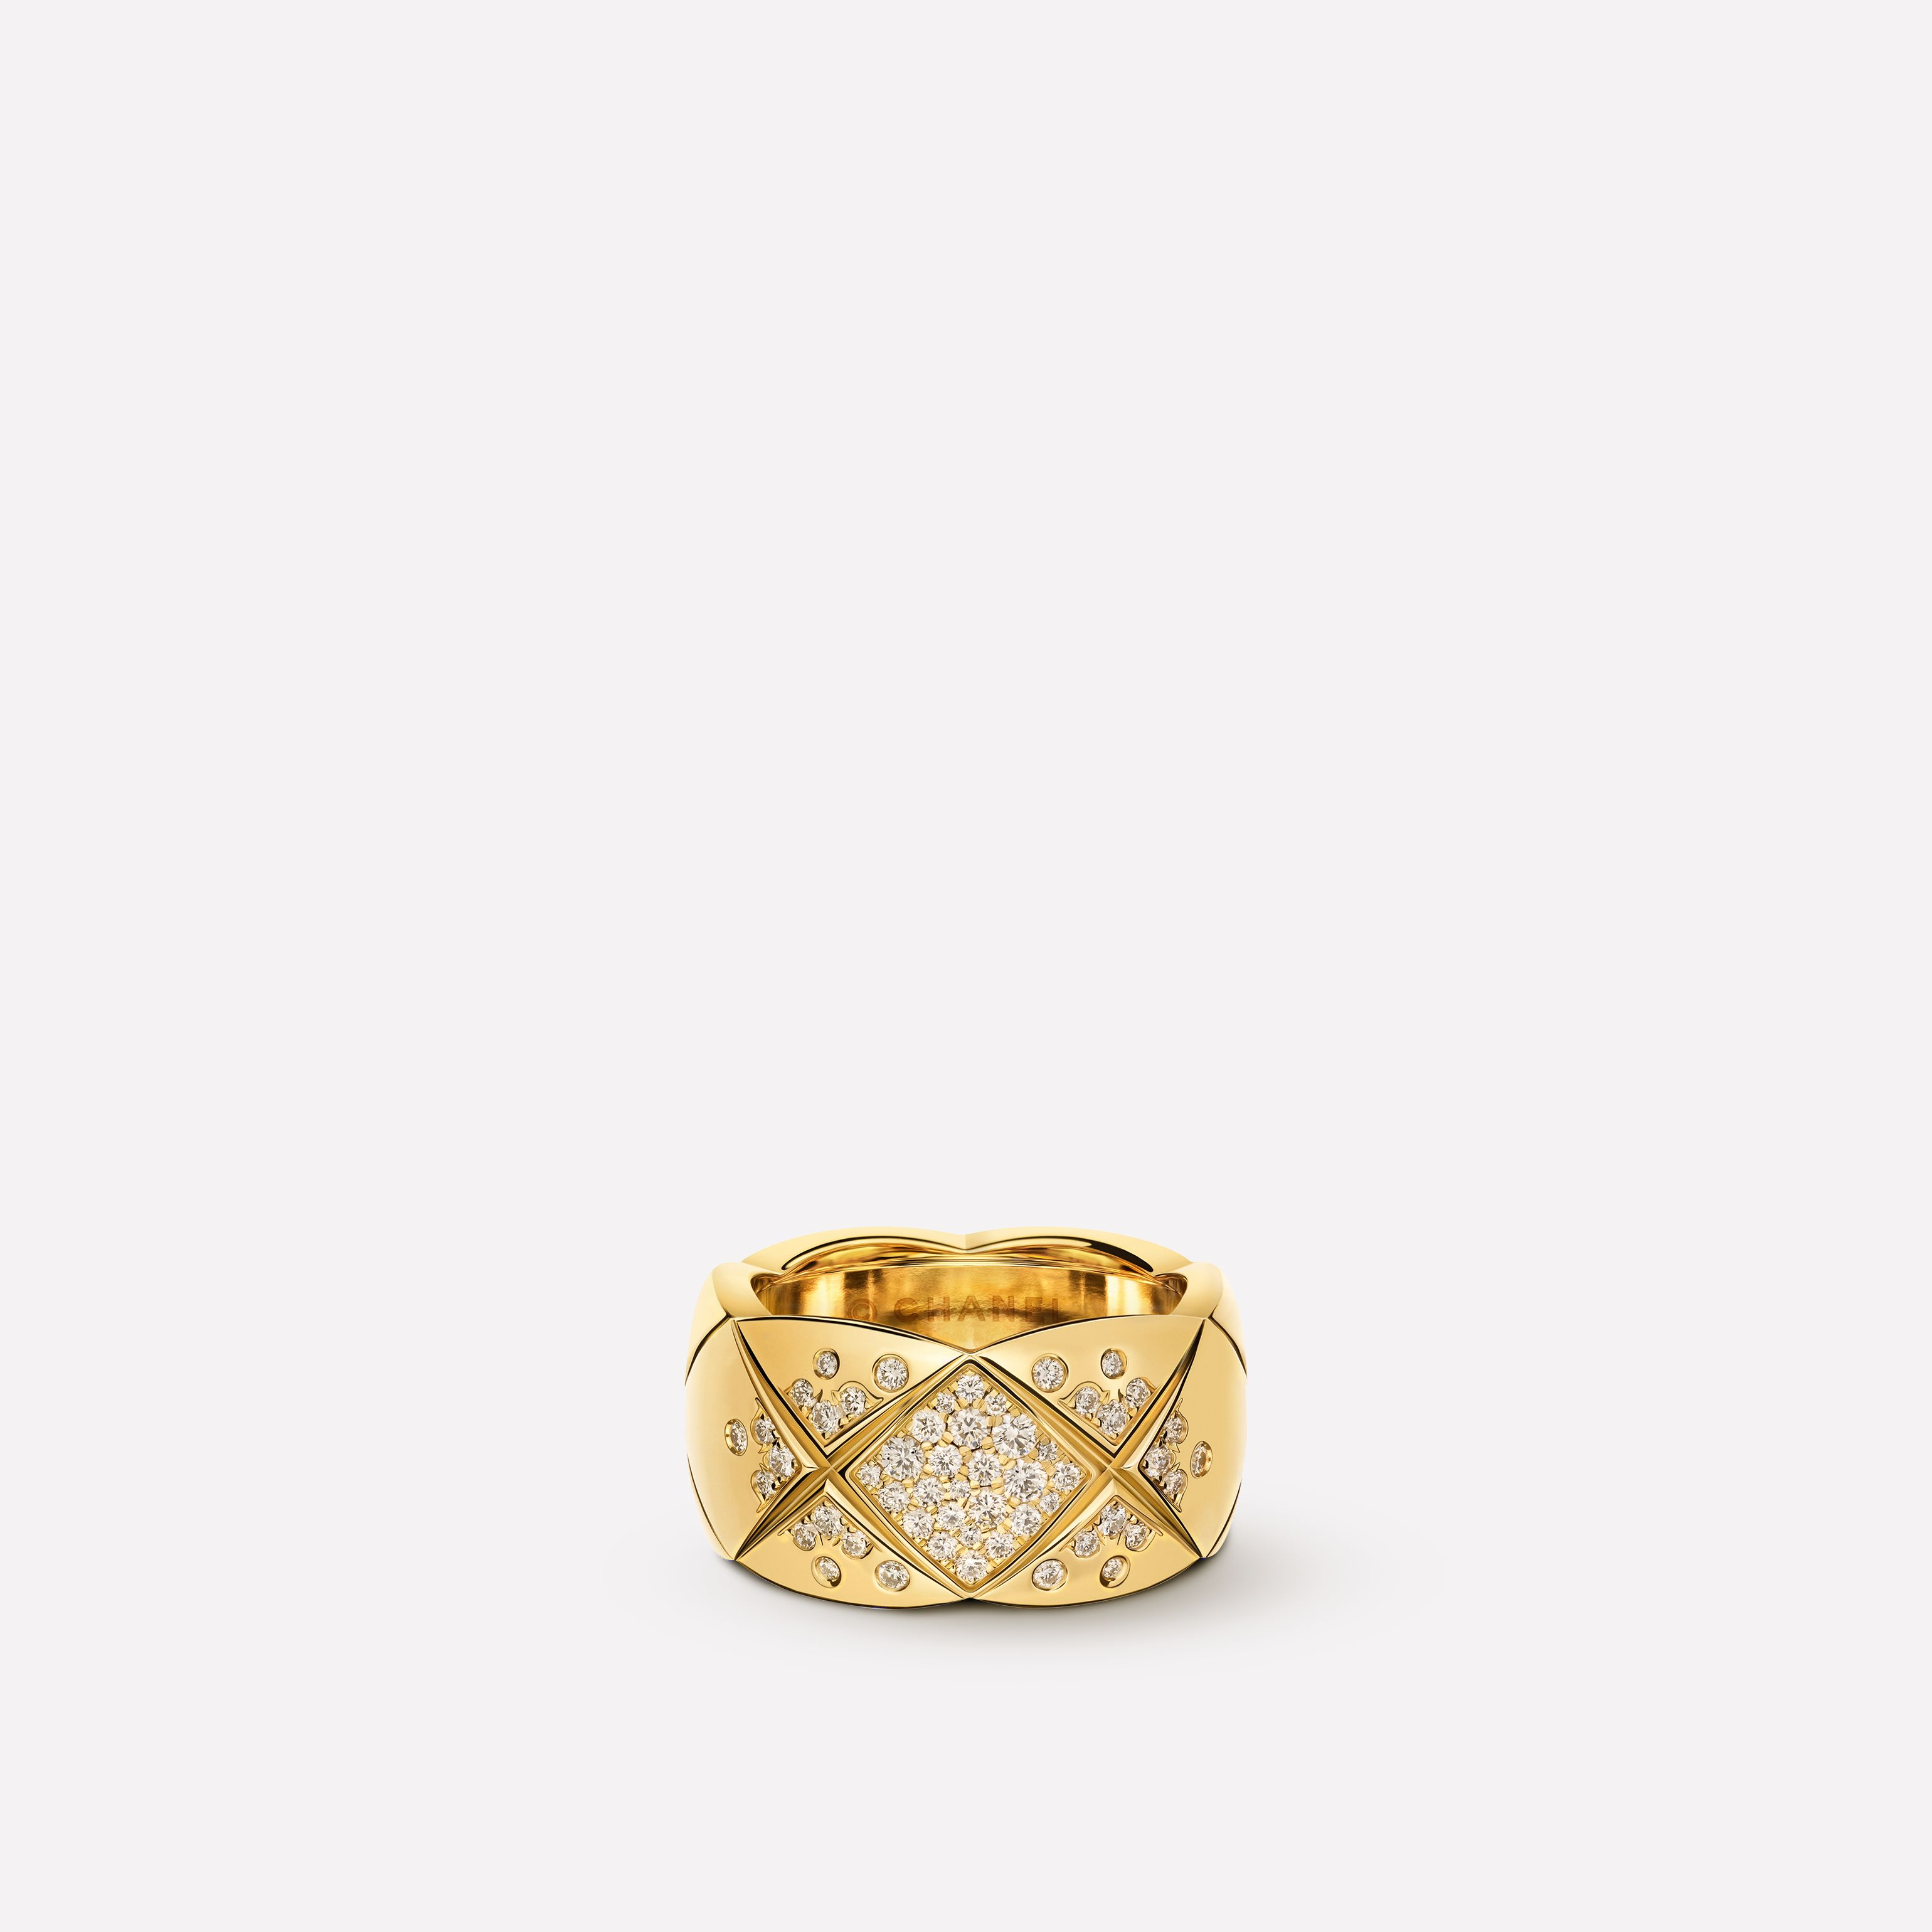 Coco Chanel Jewelry Rings